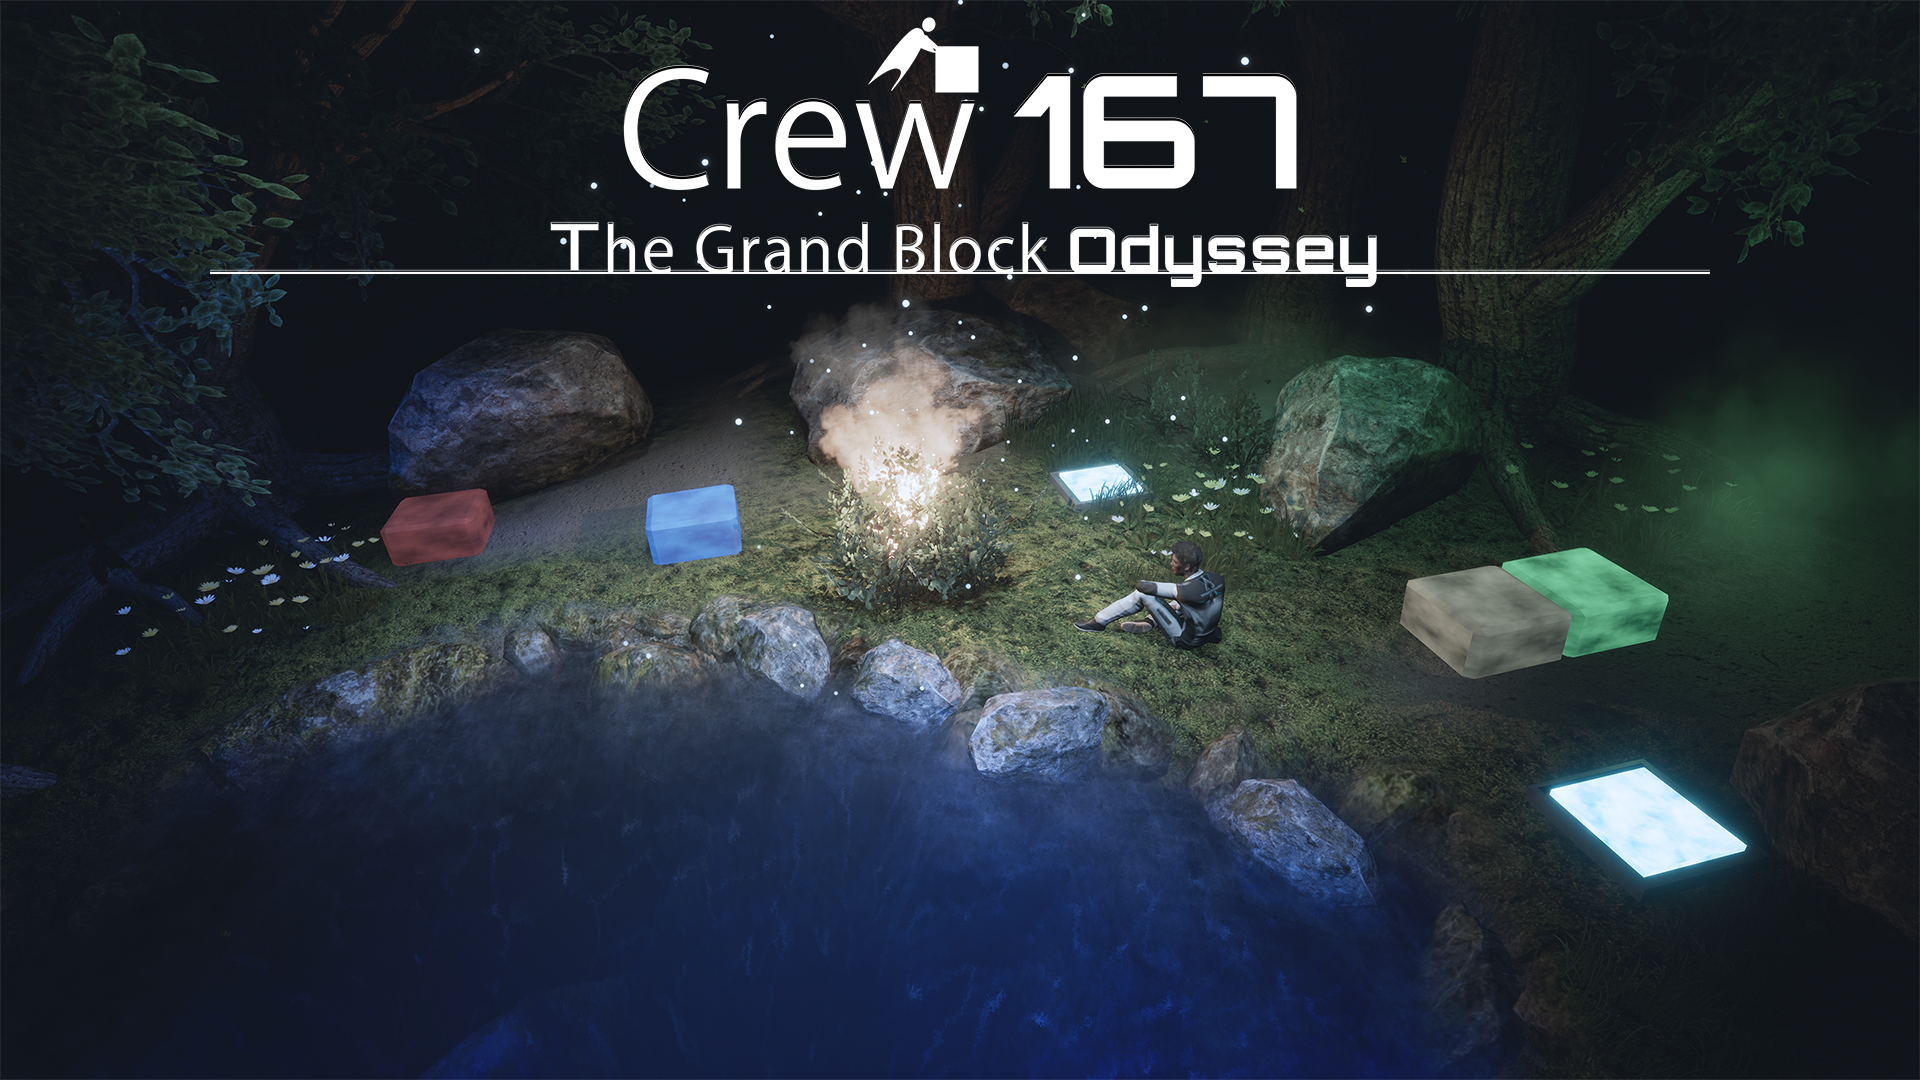 Crew 167, The Grand Block Odyssey